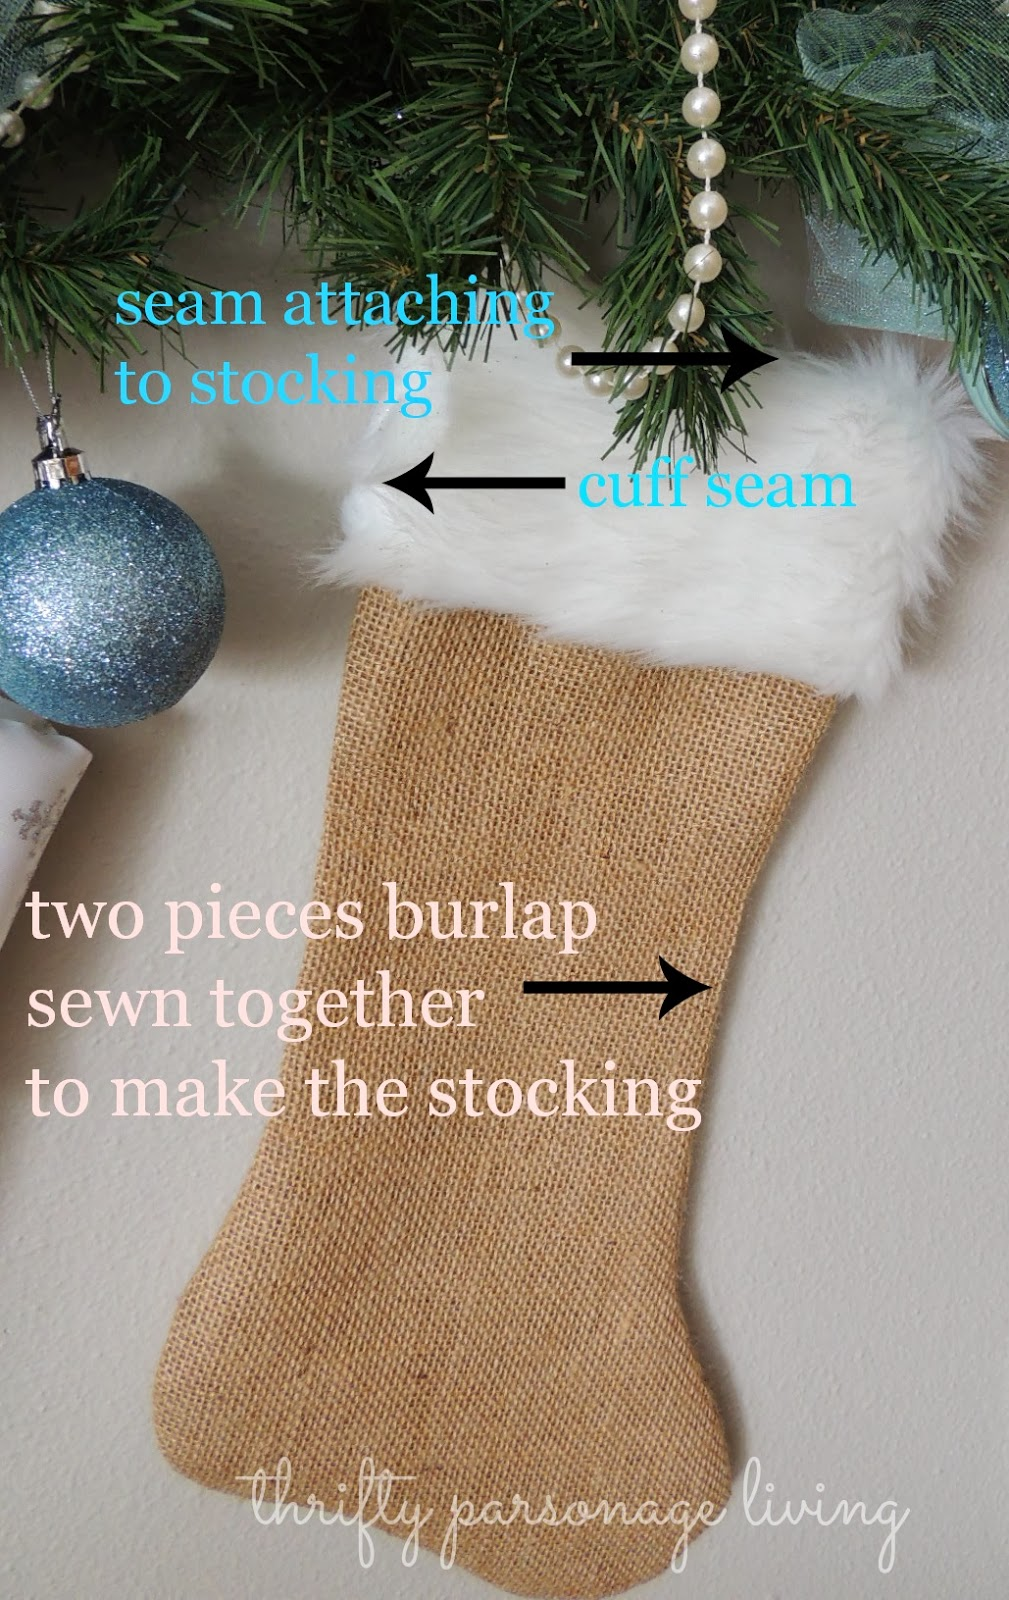 thrifty parsonage living diy faux fur christmas projects fur here s what i did i took out an old stocking from previous christmases burlap and fur fabric laying my burlap out flat i simply used my stocking as a